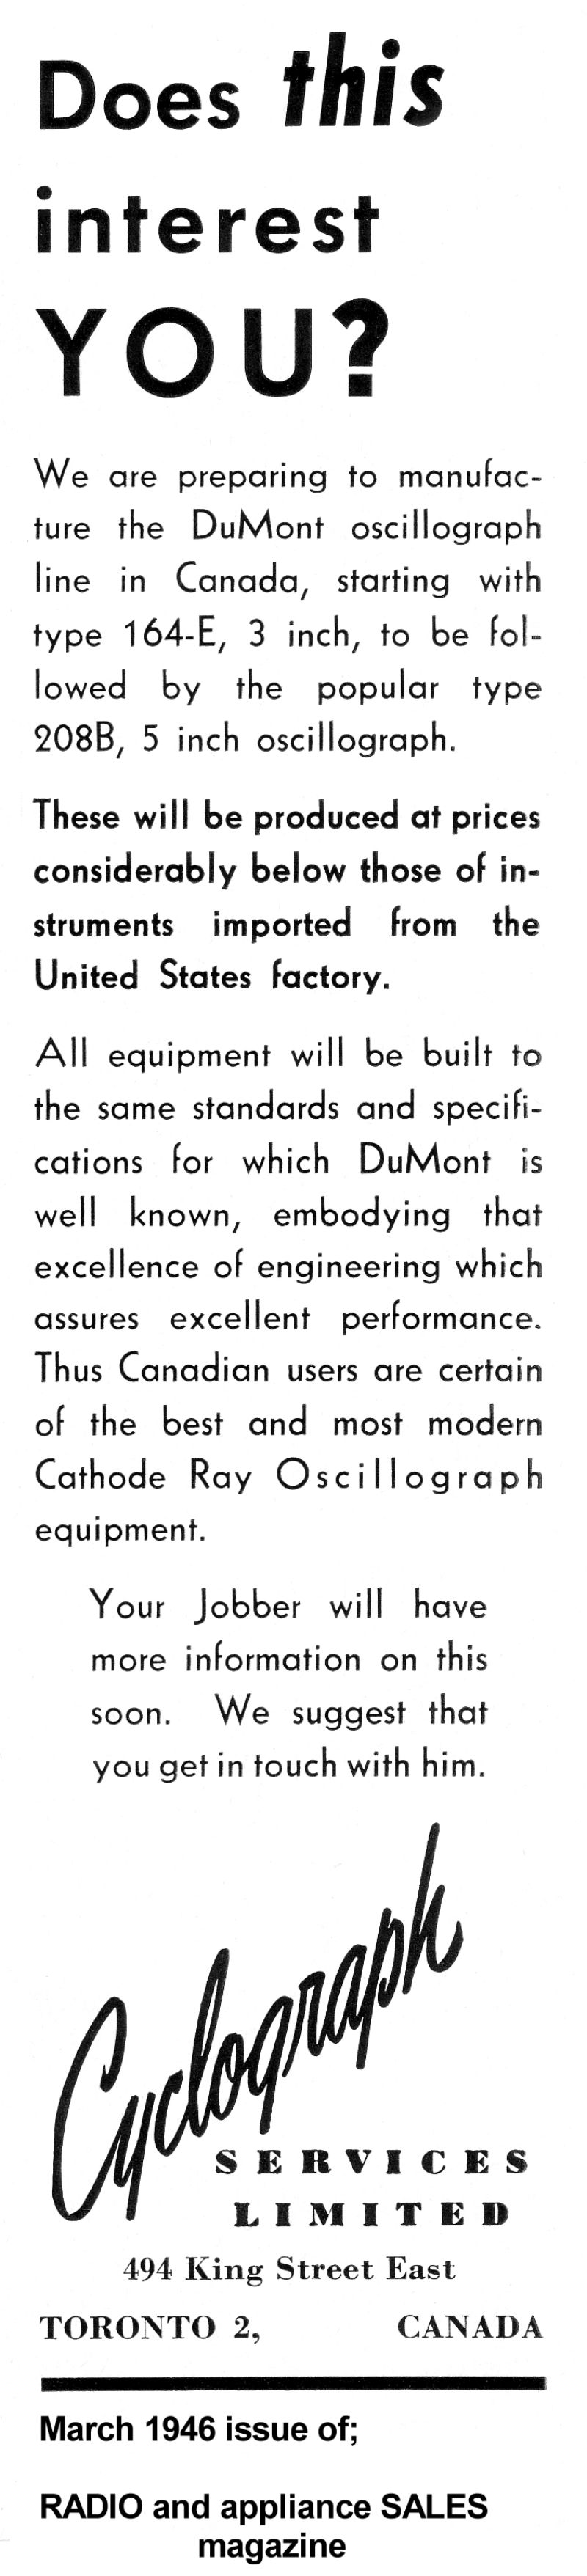 hight resolution of cyclograph introduction advertisement 1946